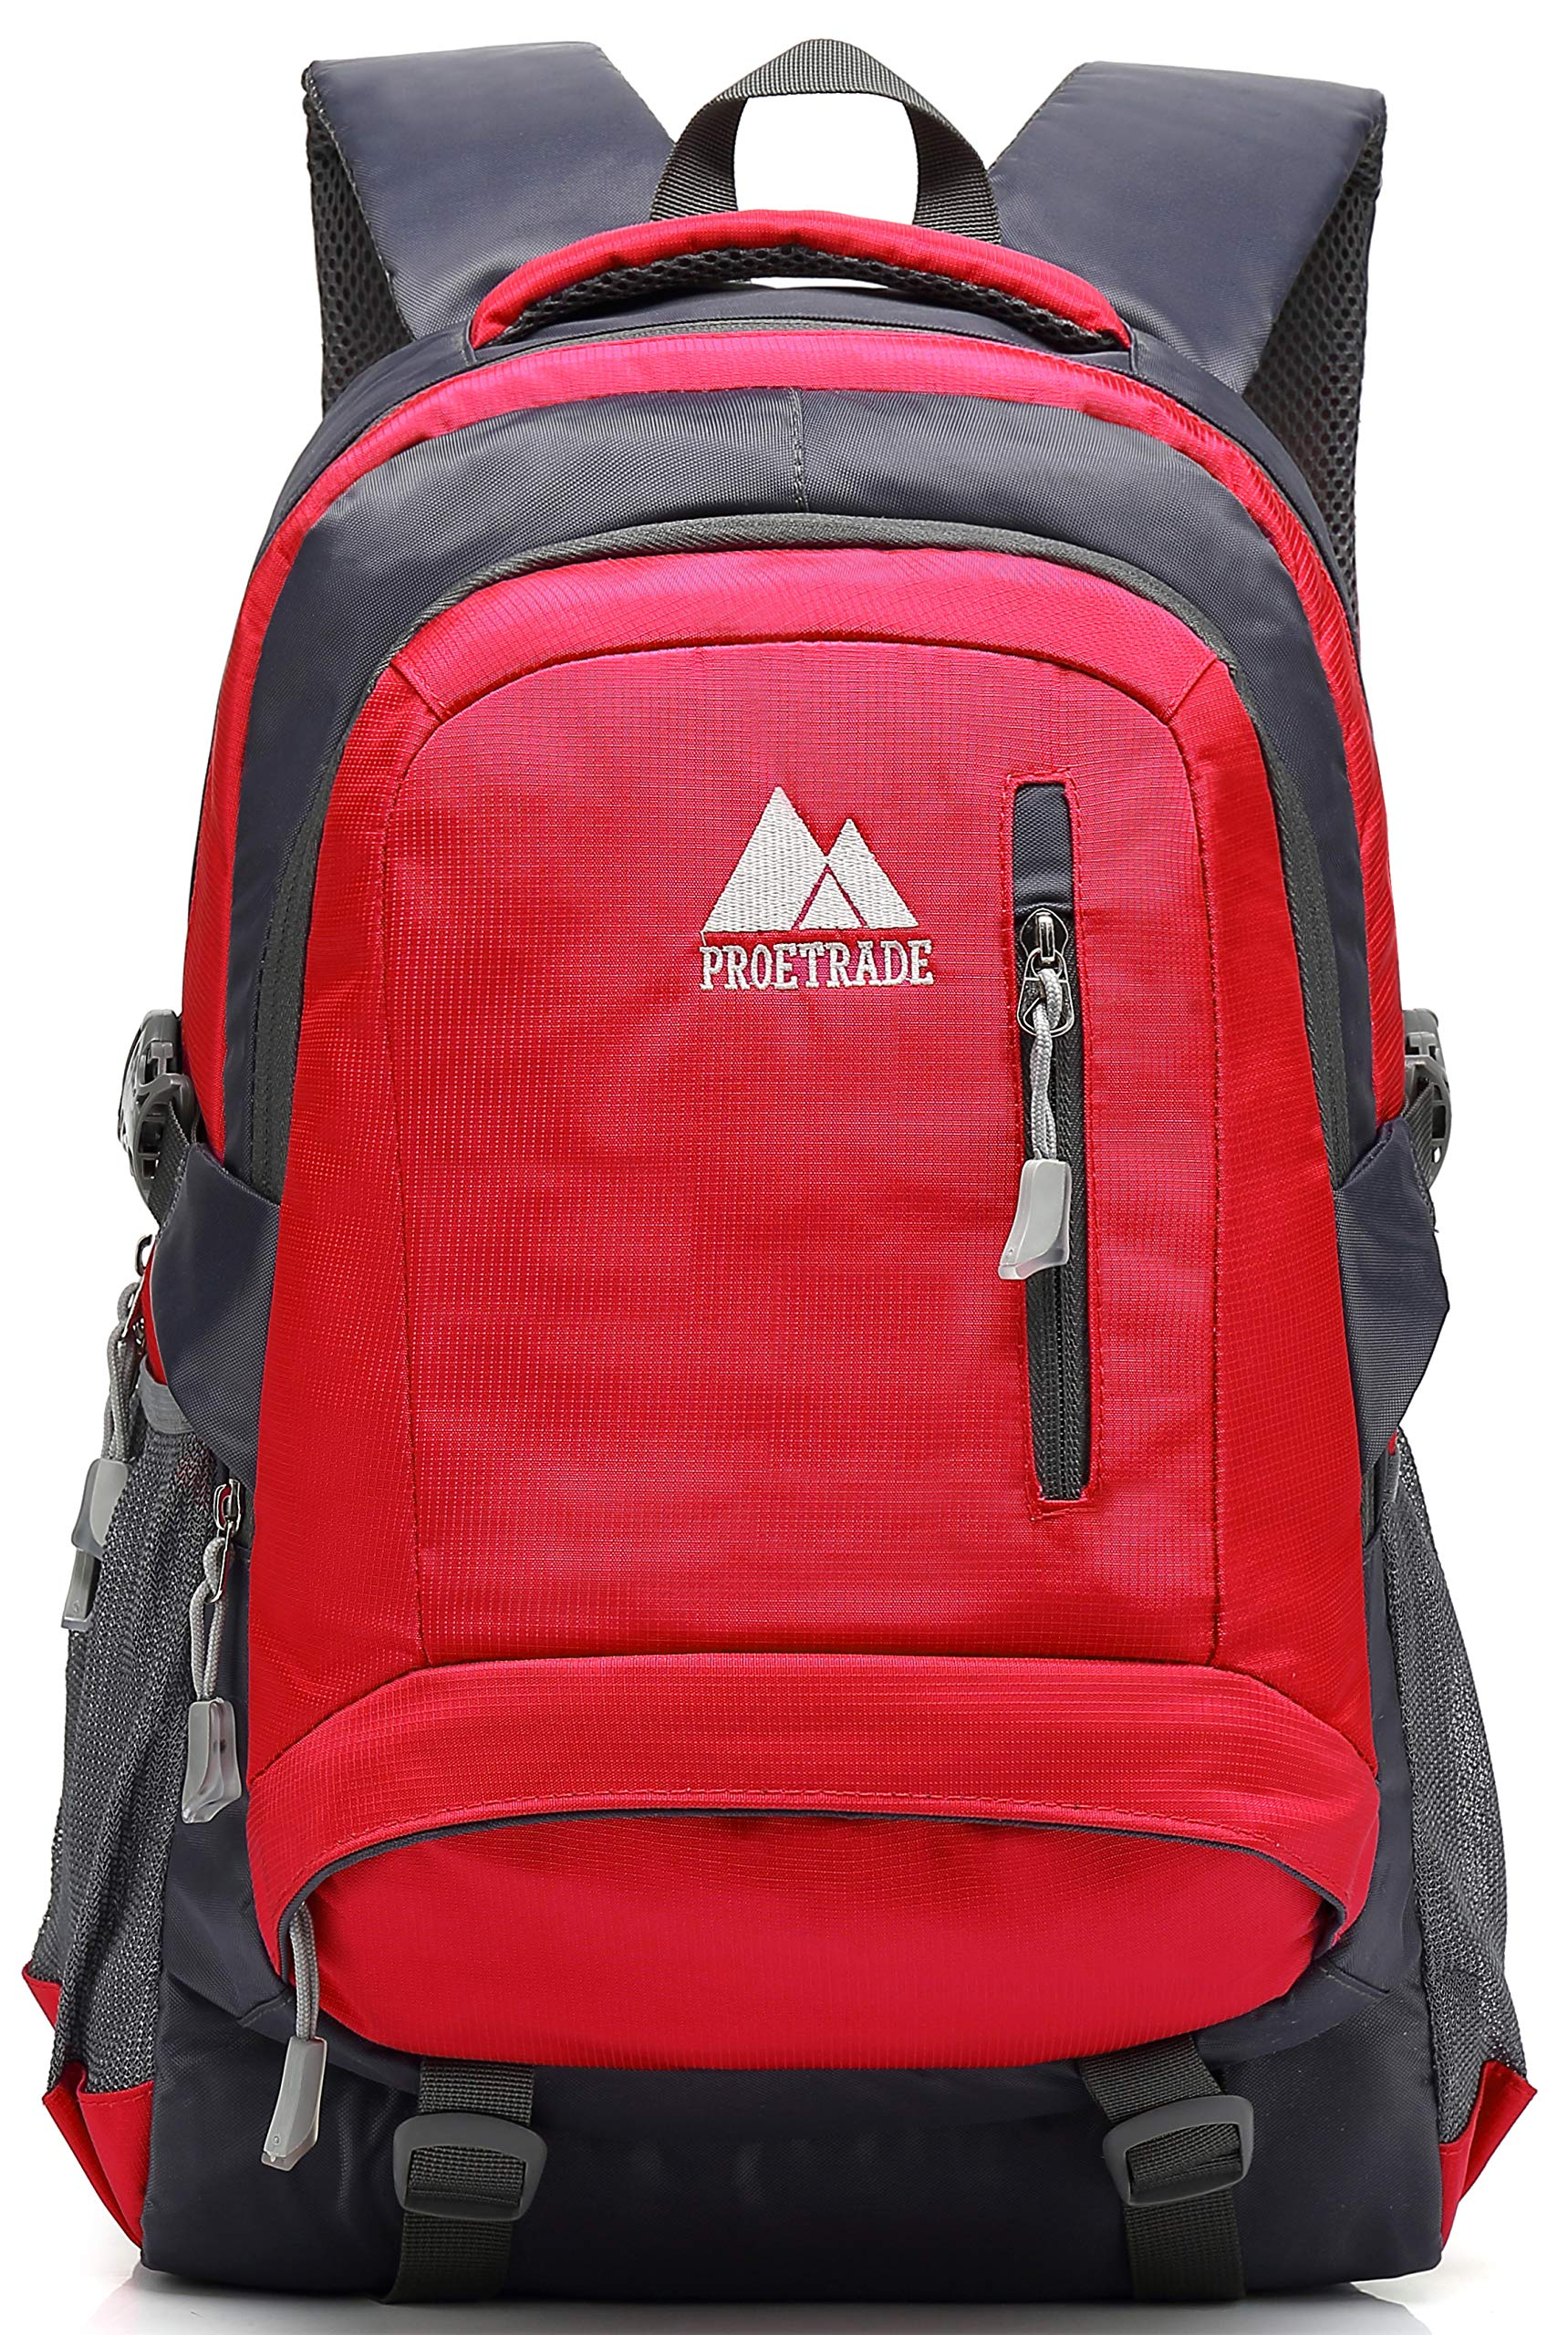 School Backpack BookBag For College Travel Hiking Fit Laptop Up to 15.6 Inch Water Resistant (Red)